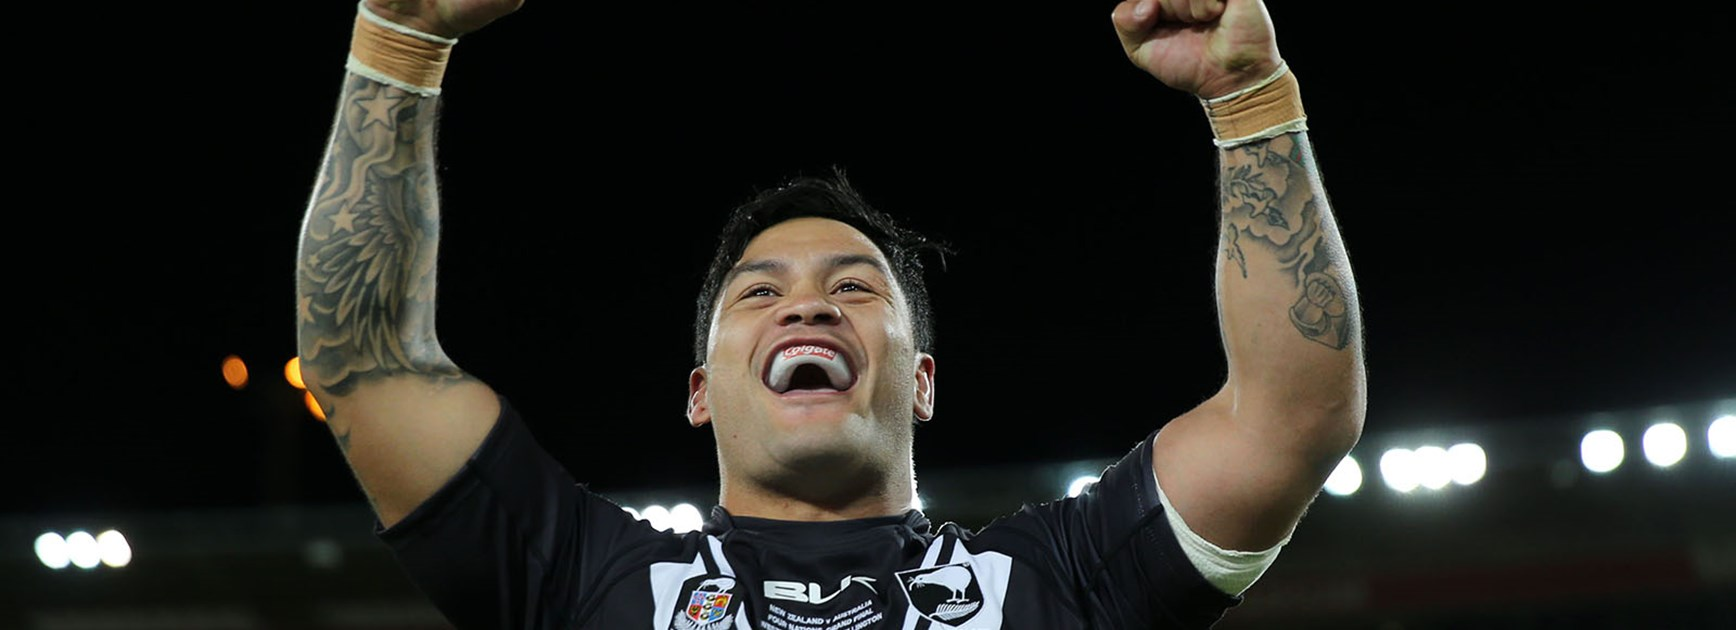 Issac Luke celebrates as the Kiwis win the 2014 Four Nations Final.